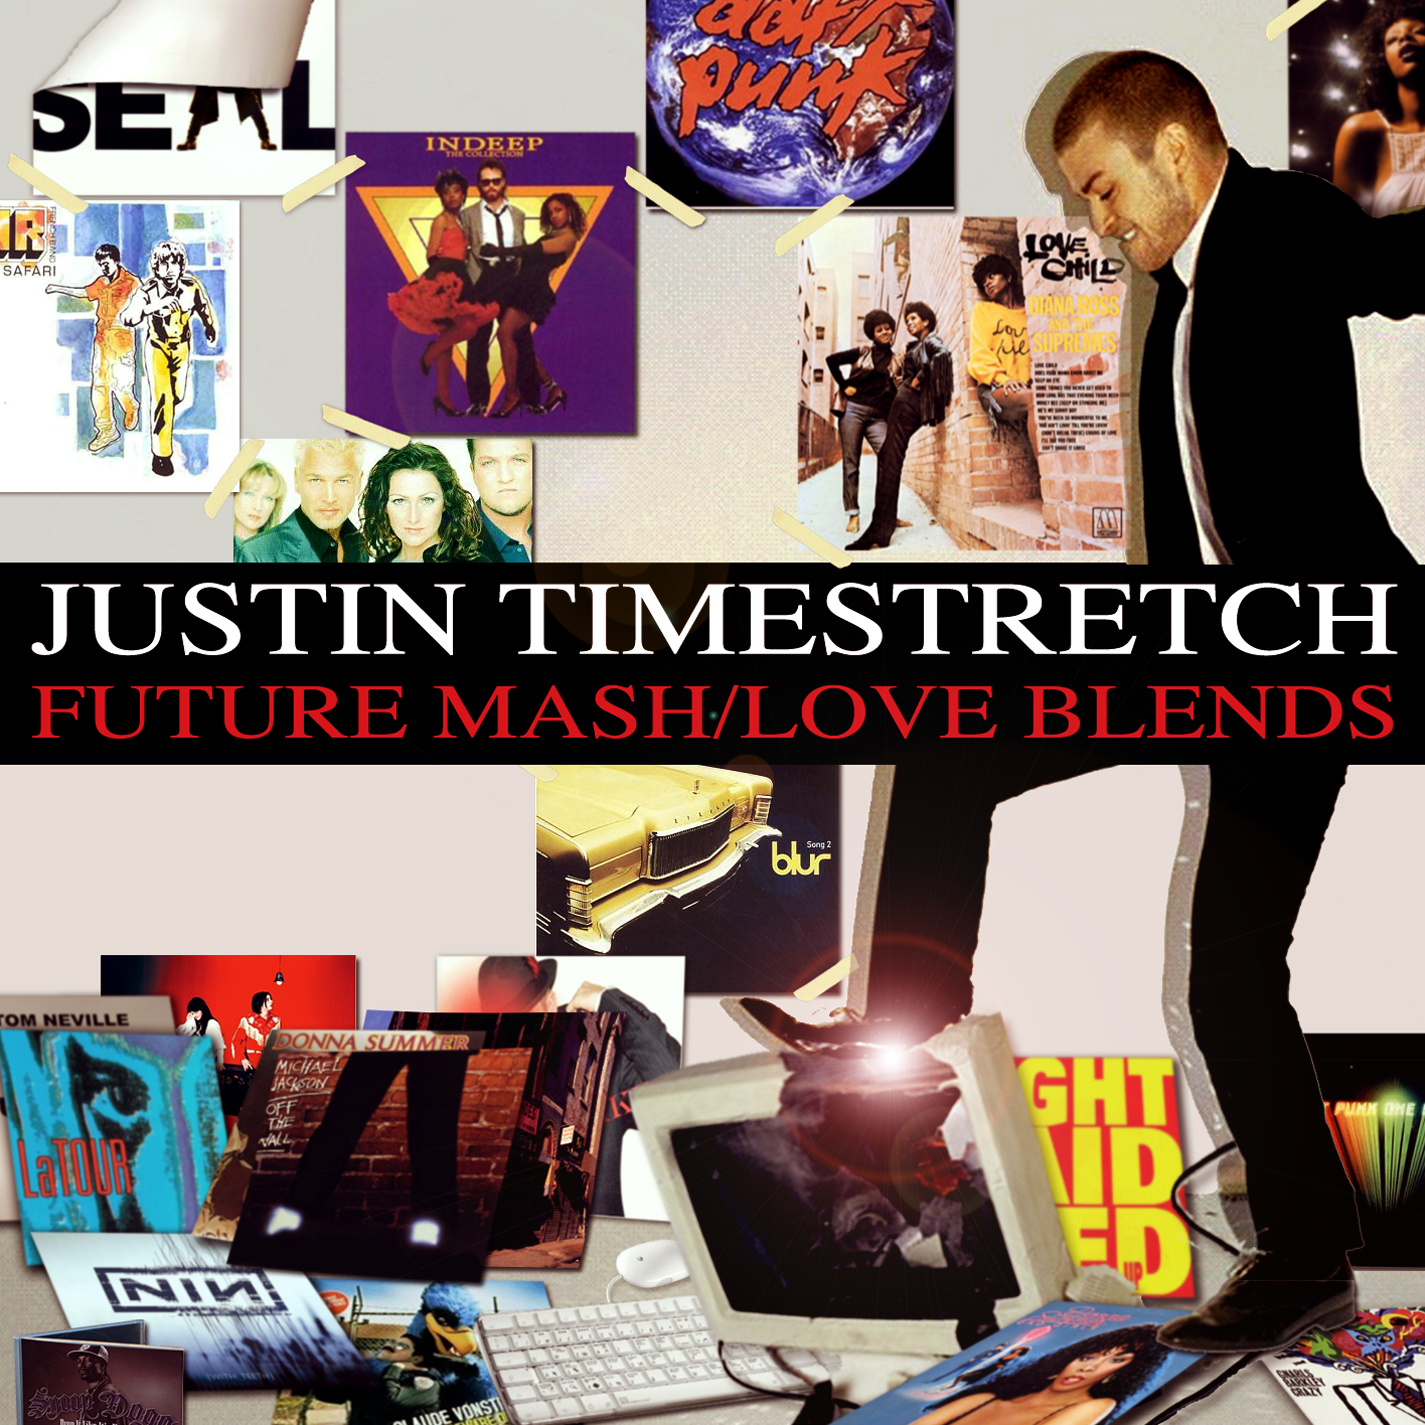 DJ ShyBoy - Justin Timestretch: Future Mash/Love Blends